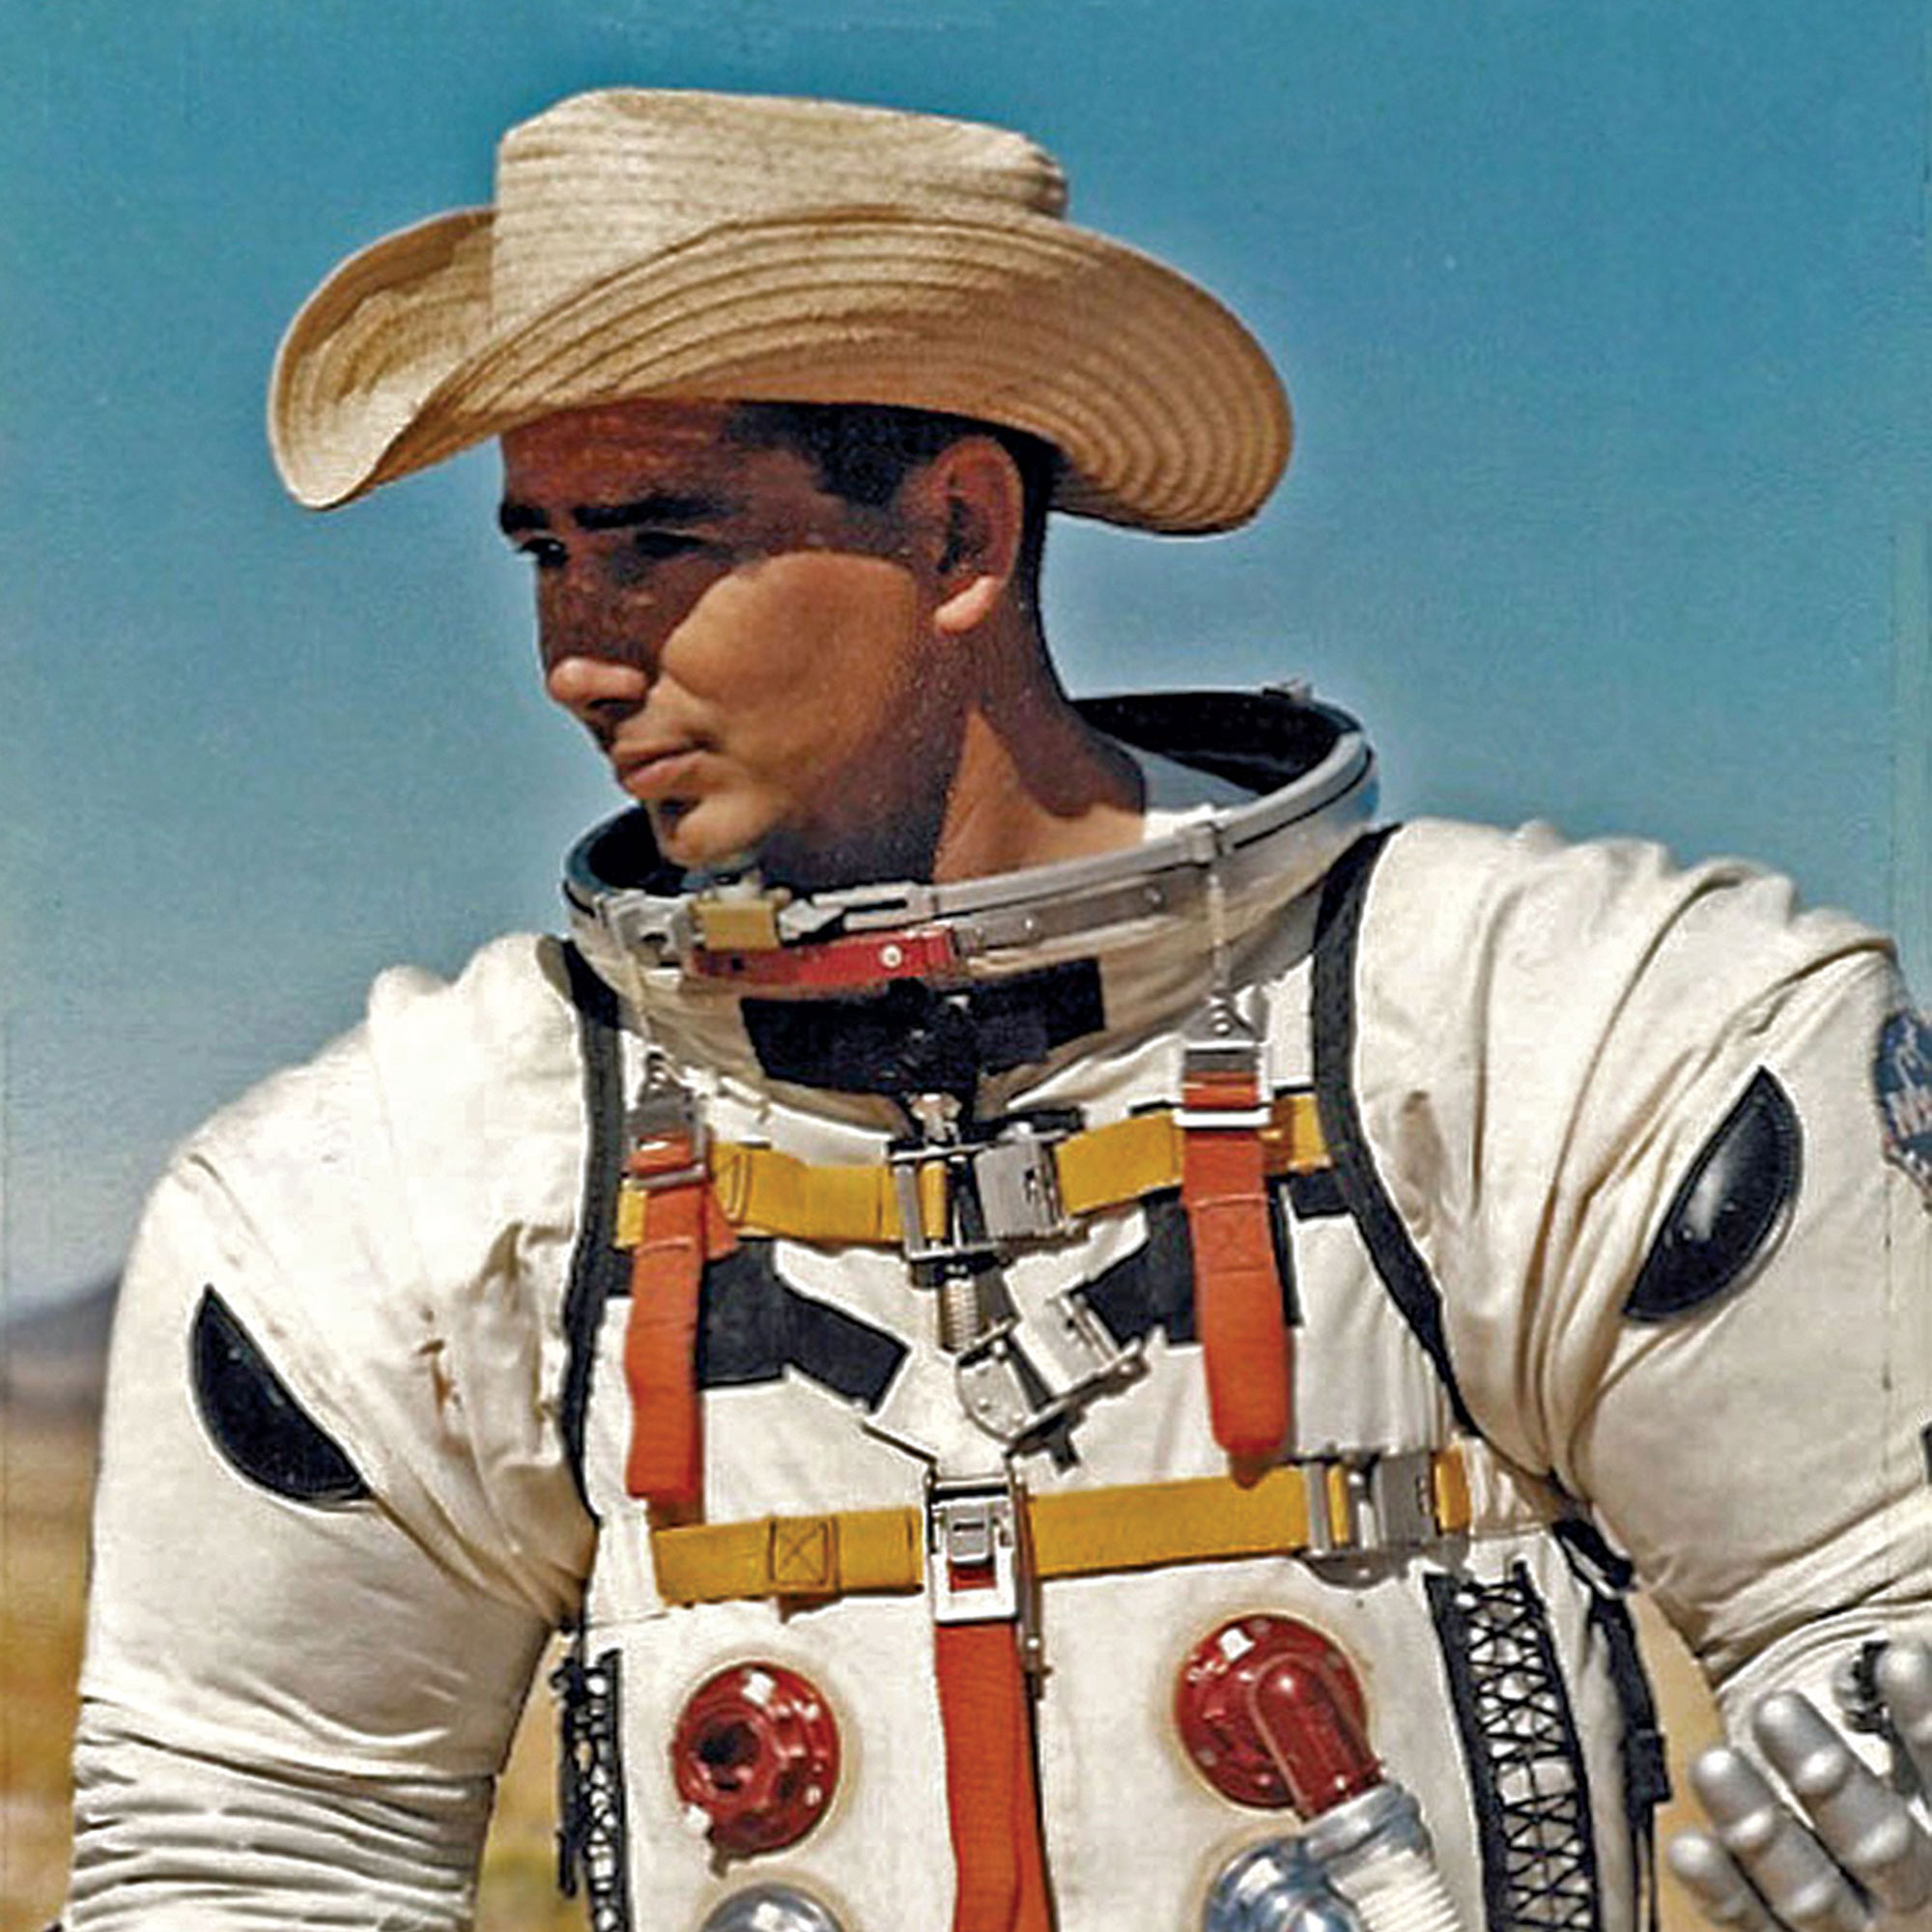 Astronaut Joe O'Connor tests a spacesuit at Hopi Buttes Volcanic Field, 1965